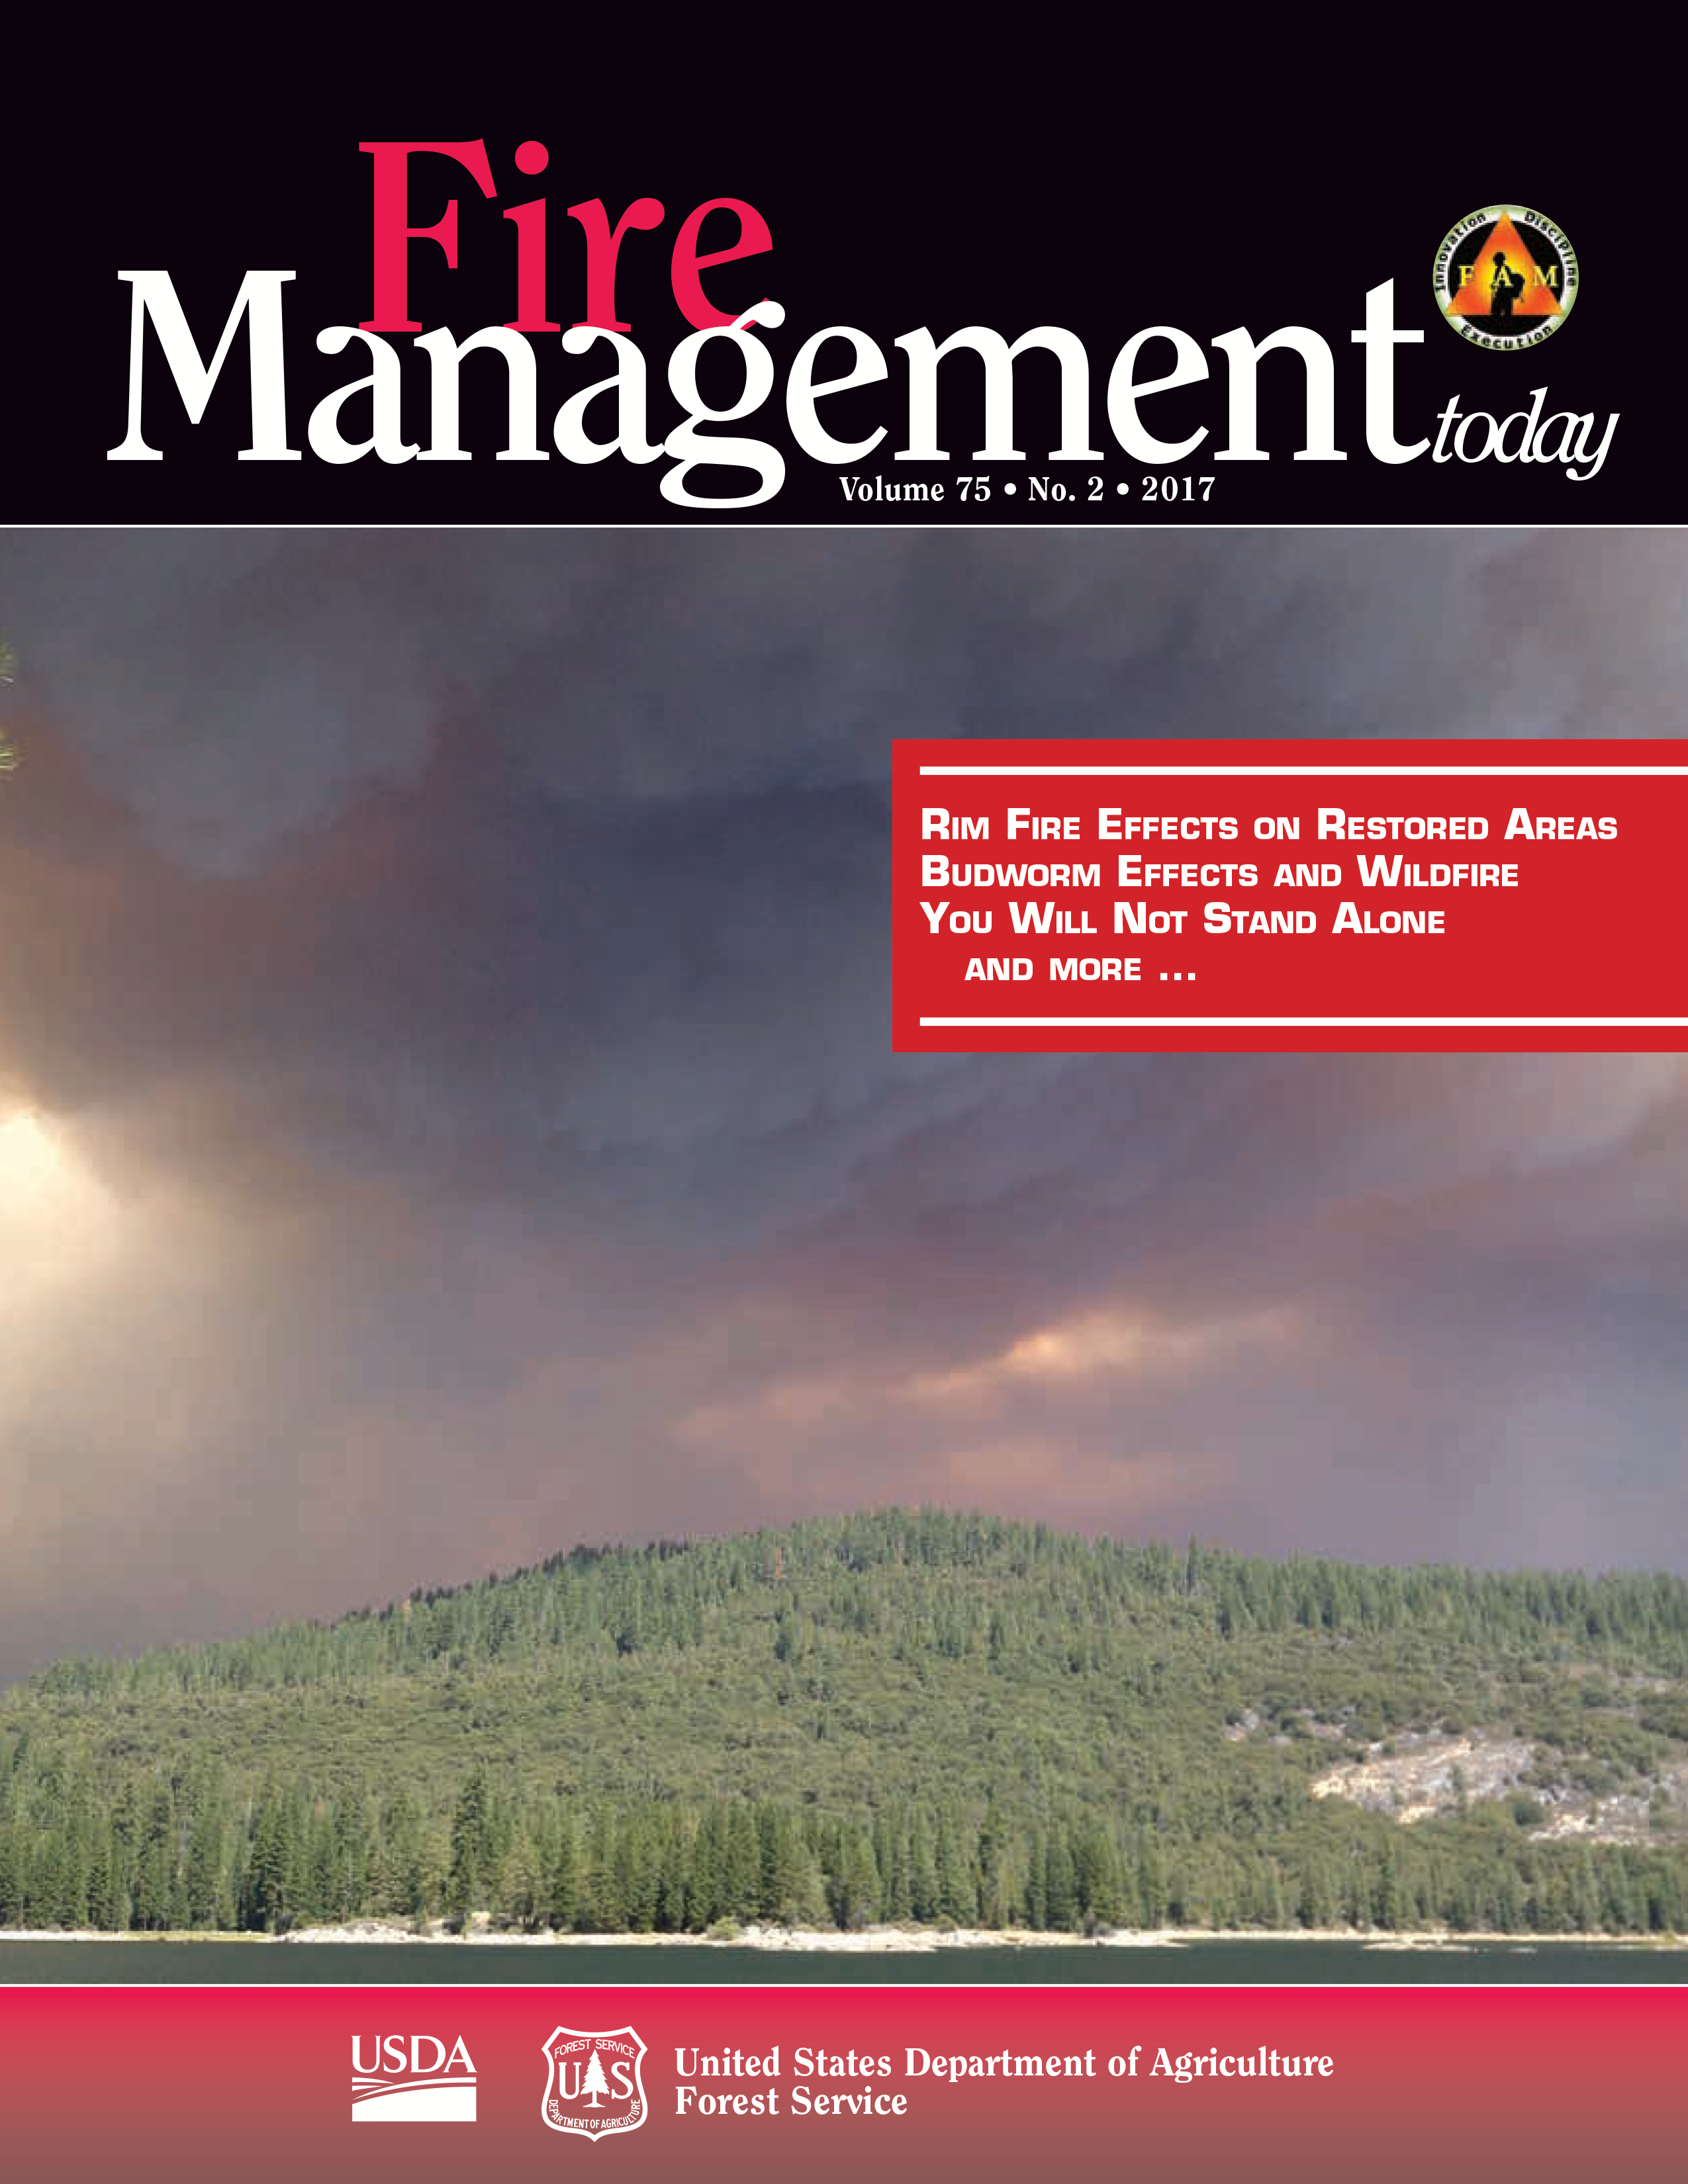 Fire Management Today Volume 75, Issue 2